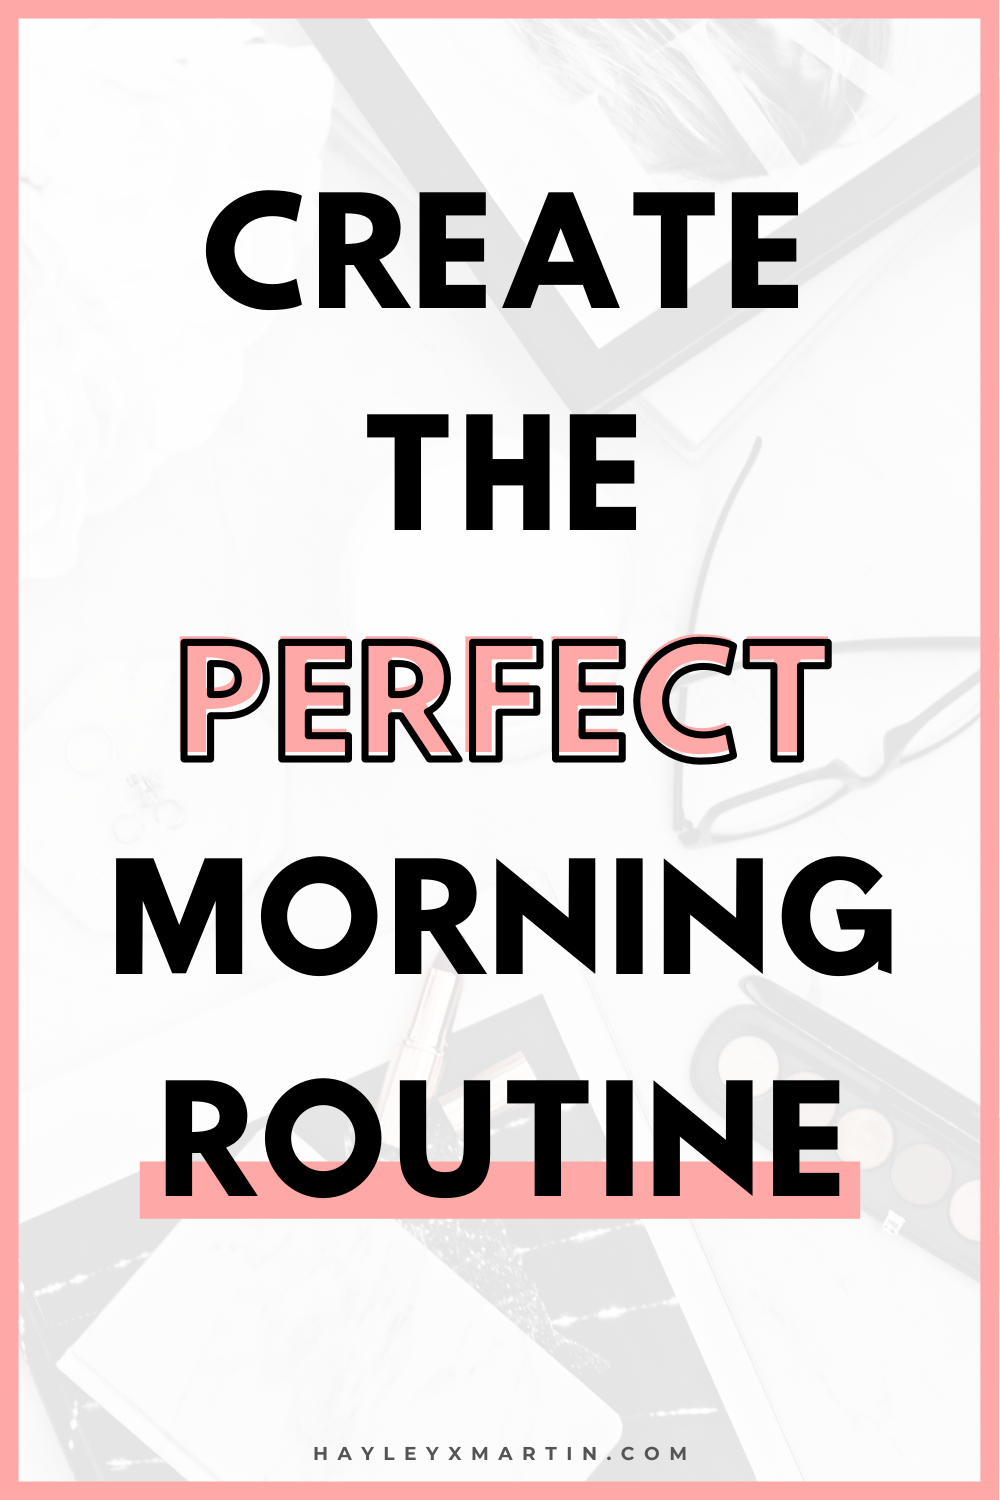 CREATE THE PERFECT MORNING ROUTINE | HAYLEYXMARTIN